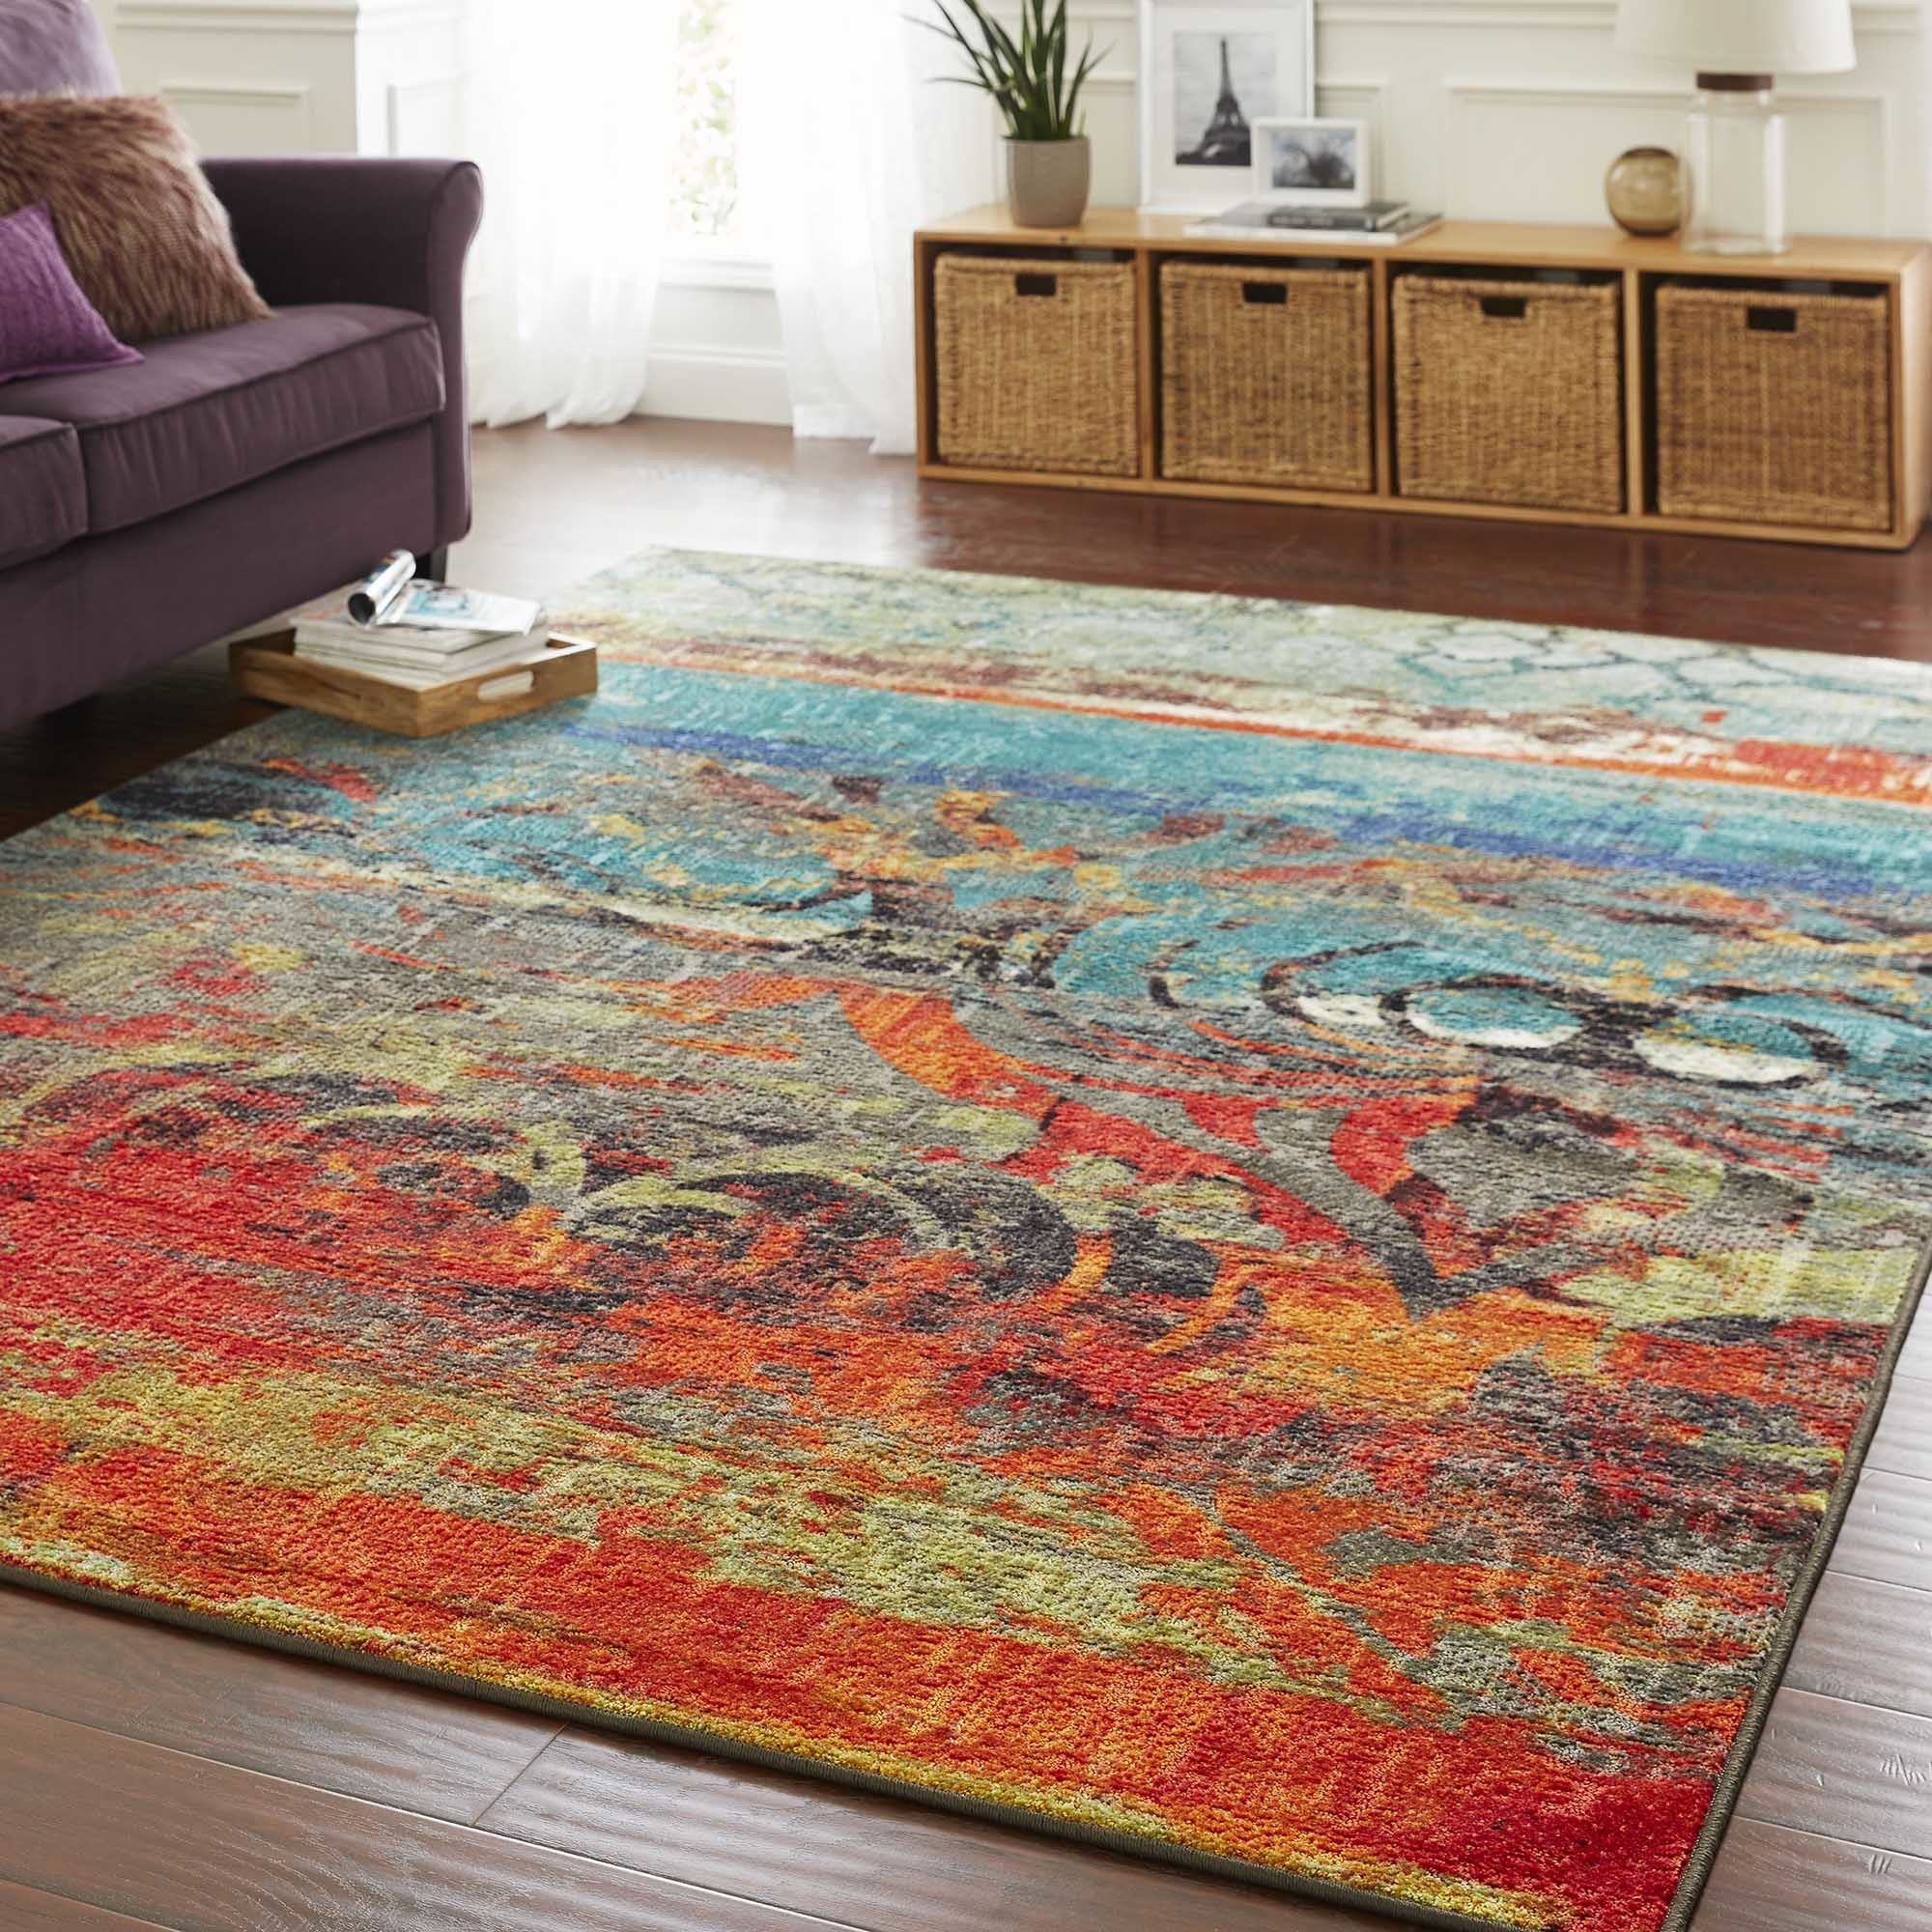 Mohawk Home Strata Eroded Color Area Rug (7'6 x 10') - Free Shipping Today  - Overstock.com - 15600005